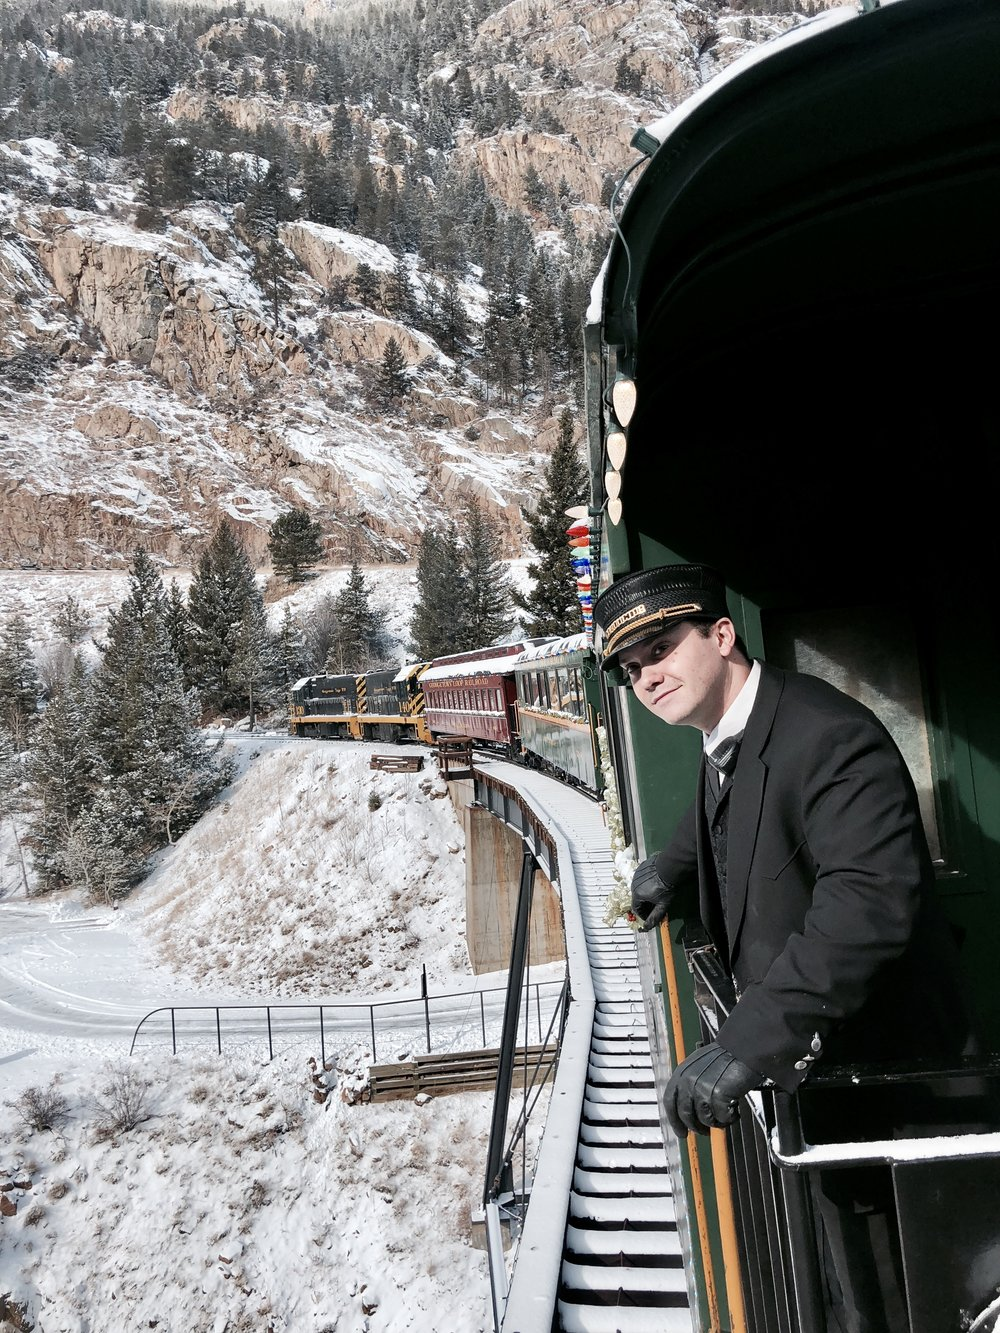 GEORGETOWN LOOP RAILROAD - The Georgetown loop railroad was a winter dream, the polar express train riding through a snow topped winter wonderland while sipping on hot cocoa and of course a surprise visit from Santa!Make sure to book your tickets in advance for the winter as it can booked out very quickly.https://www.georgetownlooprr.com/